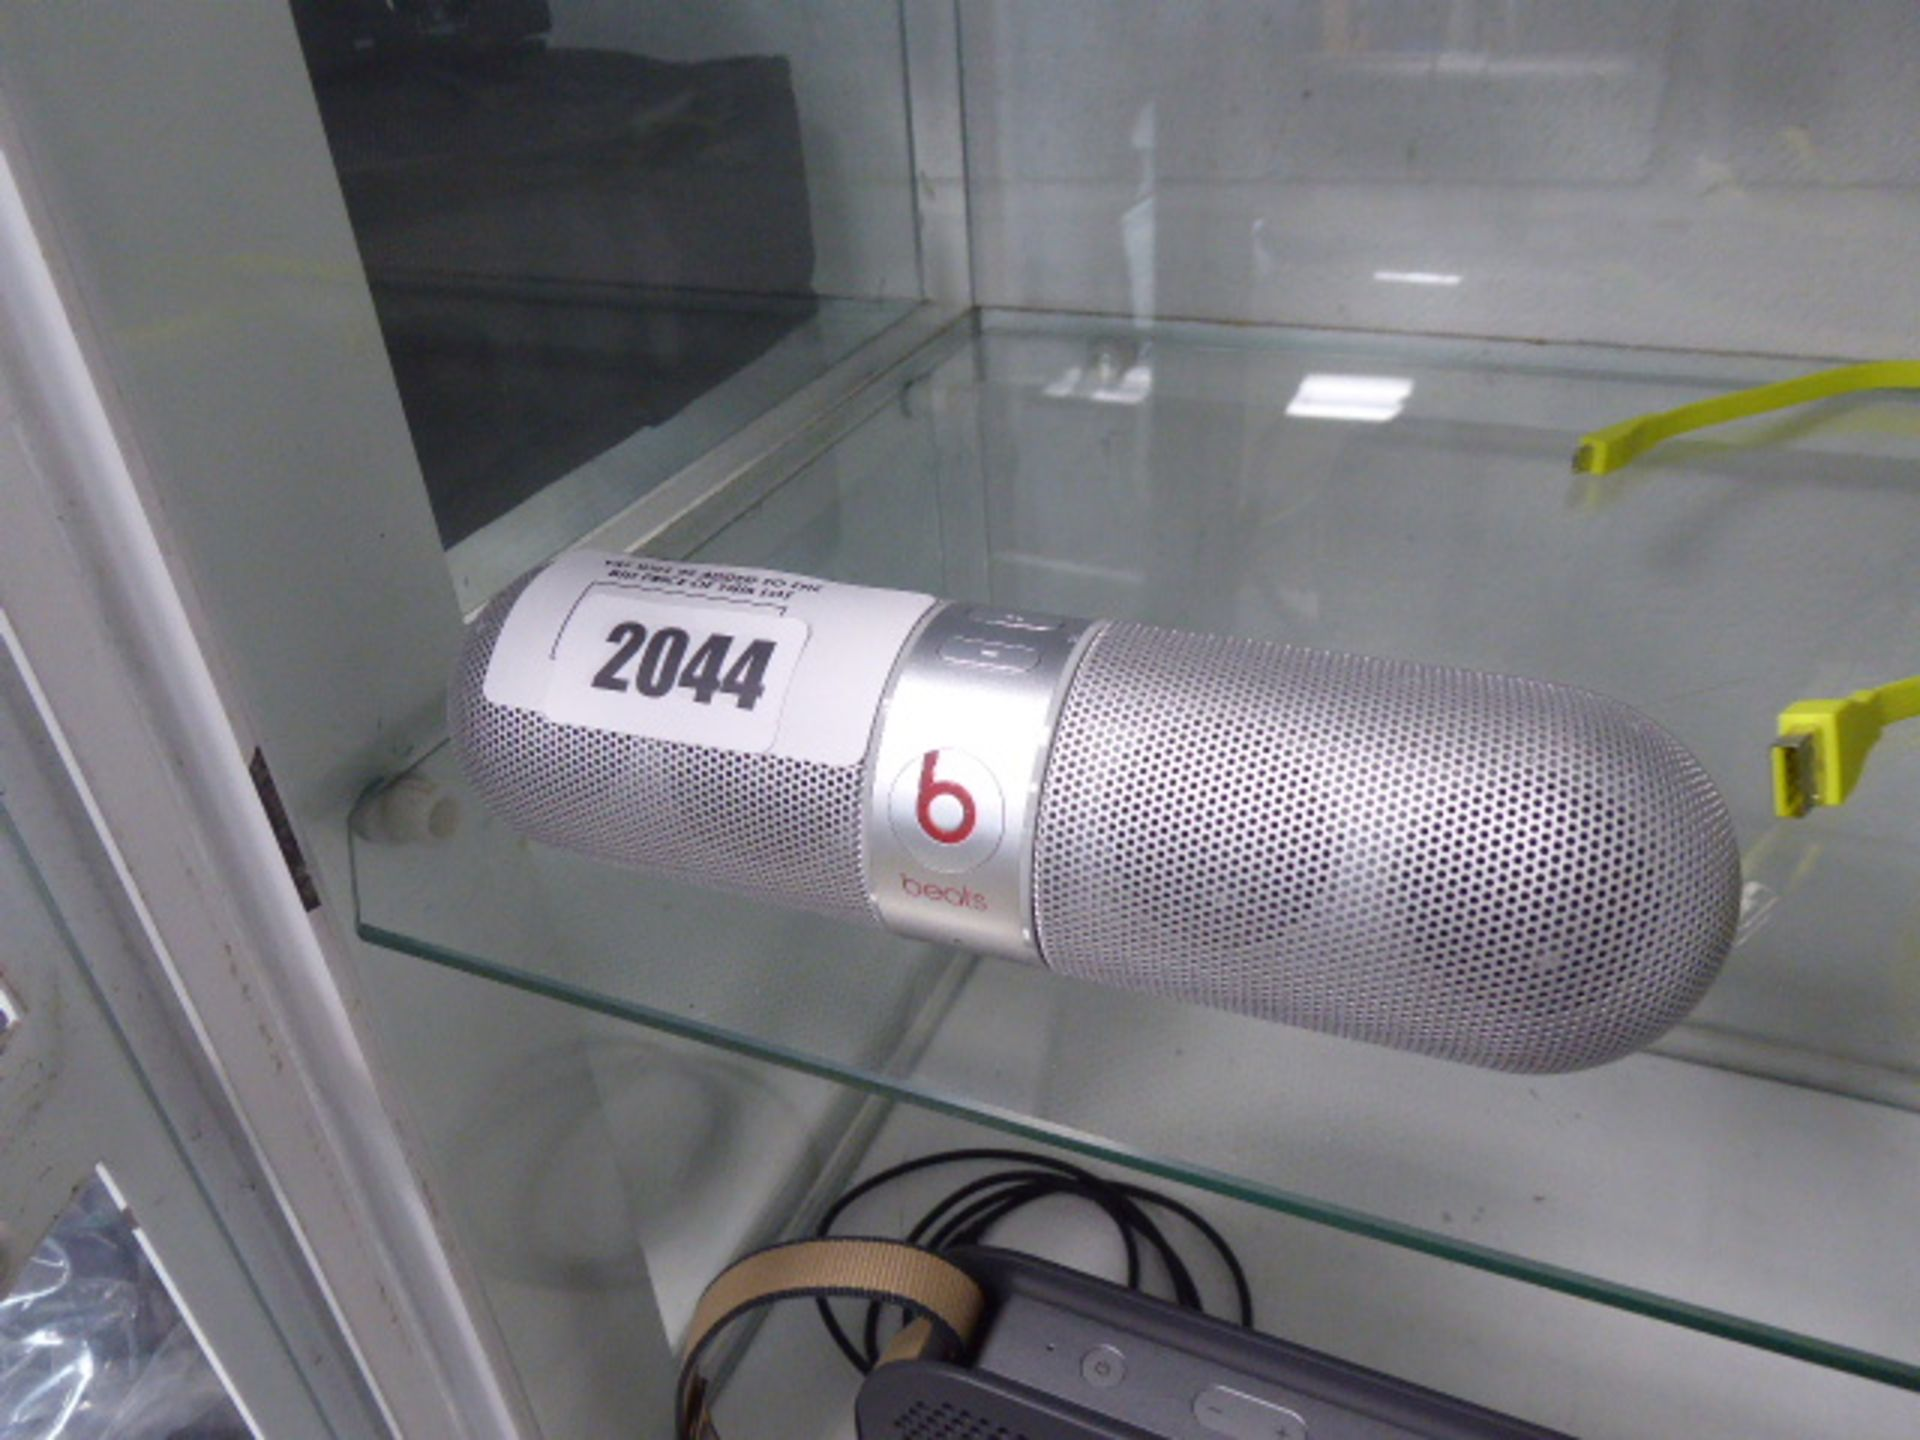 Lot 2044 - 2353 Beats Pill portable bluetooth speaker in silver, no charger